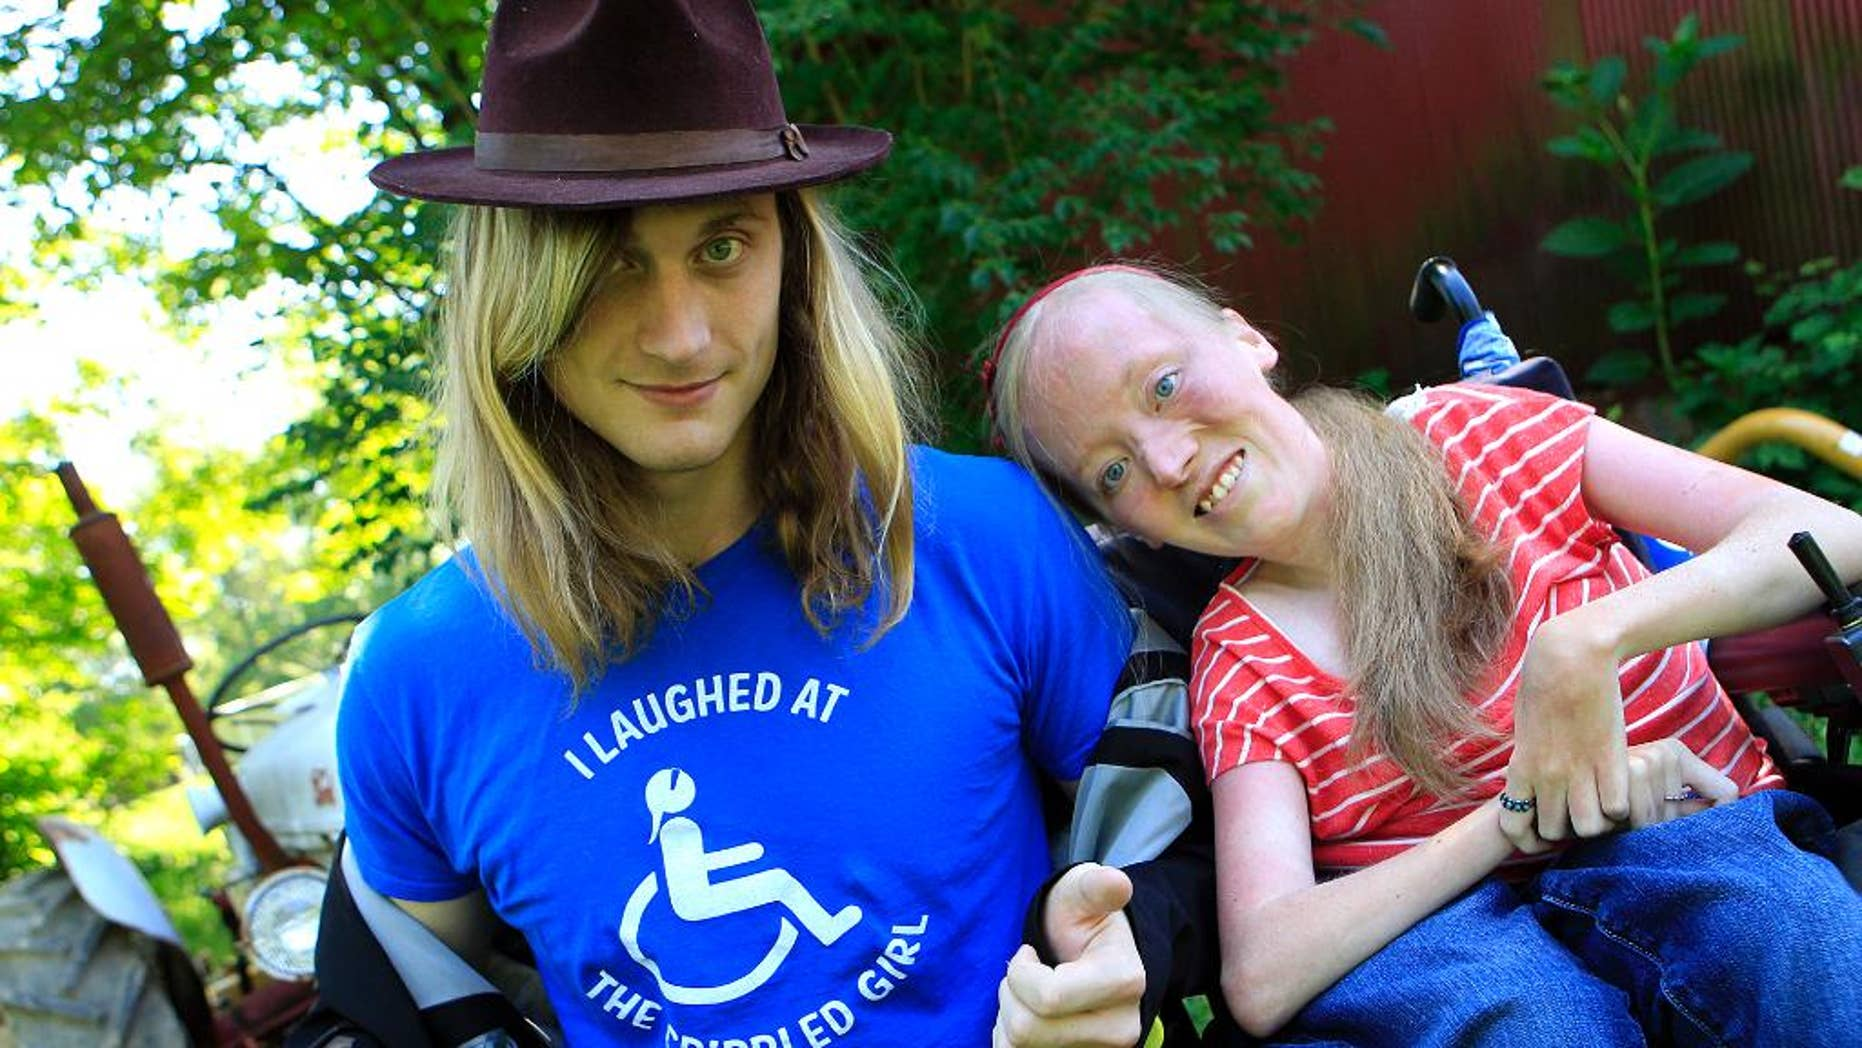 "FILE - In this June 13, 2012 file photo, Ally Bruener, right, poses for a photograph with friend Forest Thomer at her home in Alexandria, Ky. The comedy promoter, Thomer, who asked people if they wanted to laugh at a ""crippled girl"" in a wheelchair and then was arrested on a disorderly conduct charge has received $25,000 from the city to settle his federal lawsuit charging violation of his free-speech rights, the man's attorney said Wednesday, Feb. 4, 2015. The question wasn't intended to demean Bruener, but to promote her next comedy show and website. (AP Photo/The Cincinnati Enquirer, Cara Owsley, File)  MANDATORY CREDIT; NO SALES"